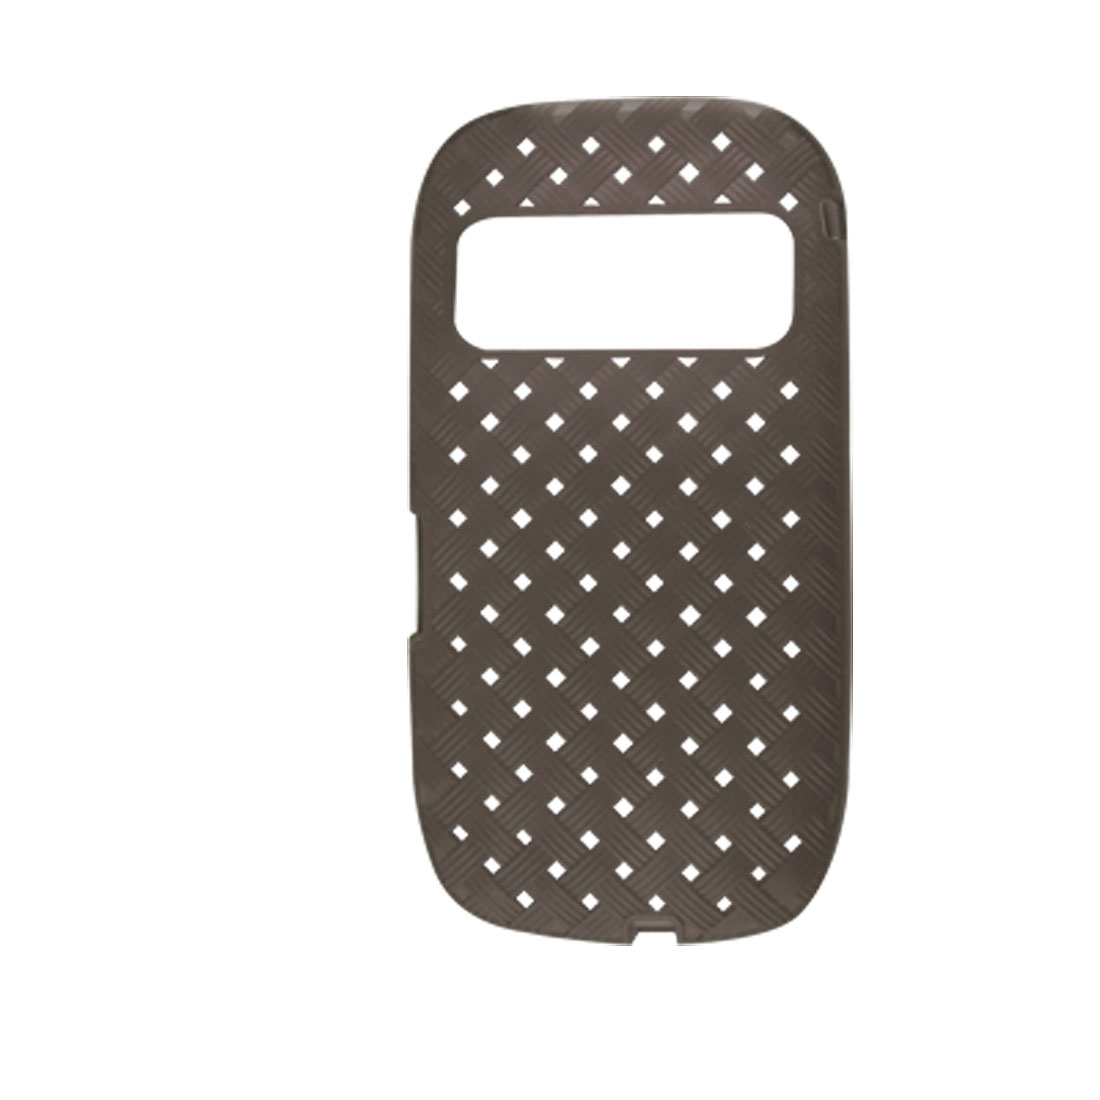 Grey Soft Plastic Square Hole Pattern Case for Nokia C7